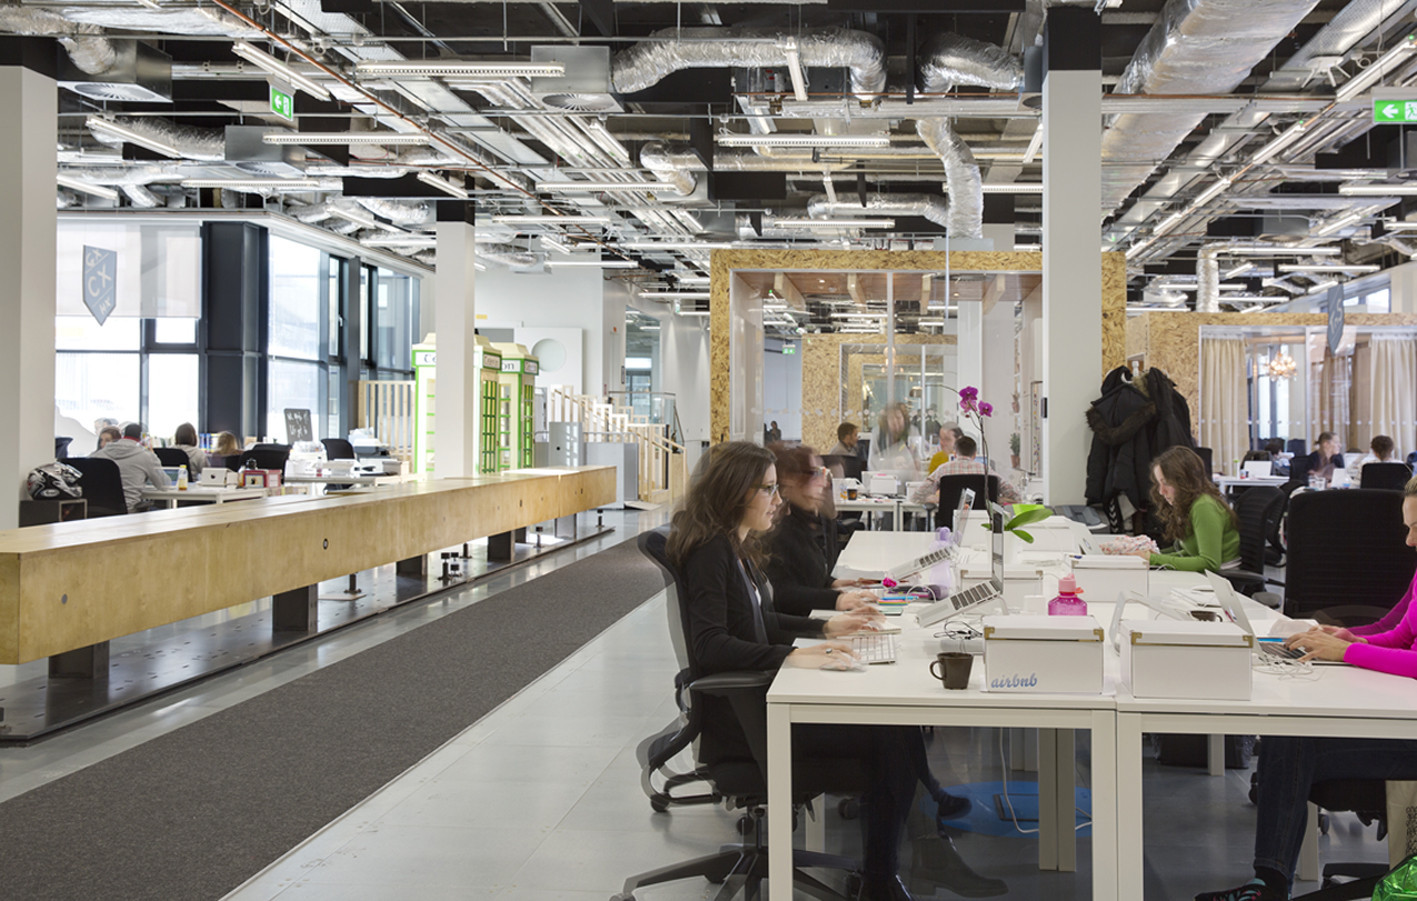 Open Floor Plans Vs Closed Floor Plans: Why Open-Plan Offices Don't Work (And Some Alternatives